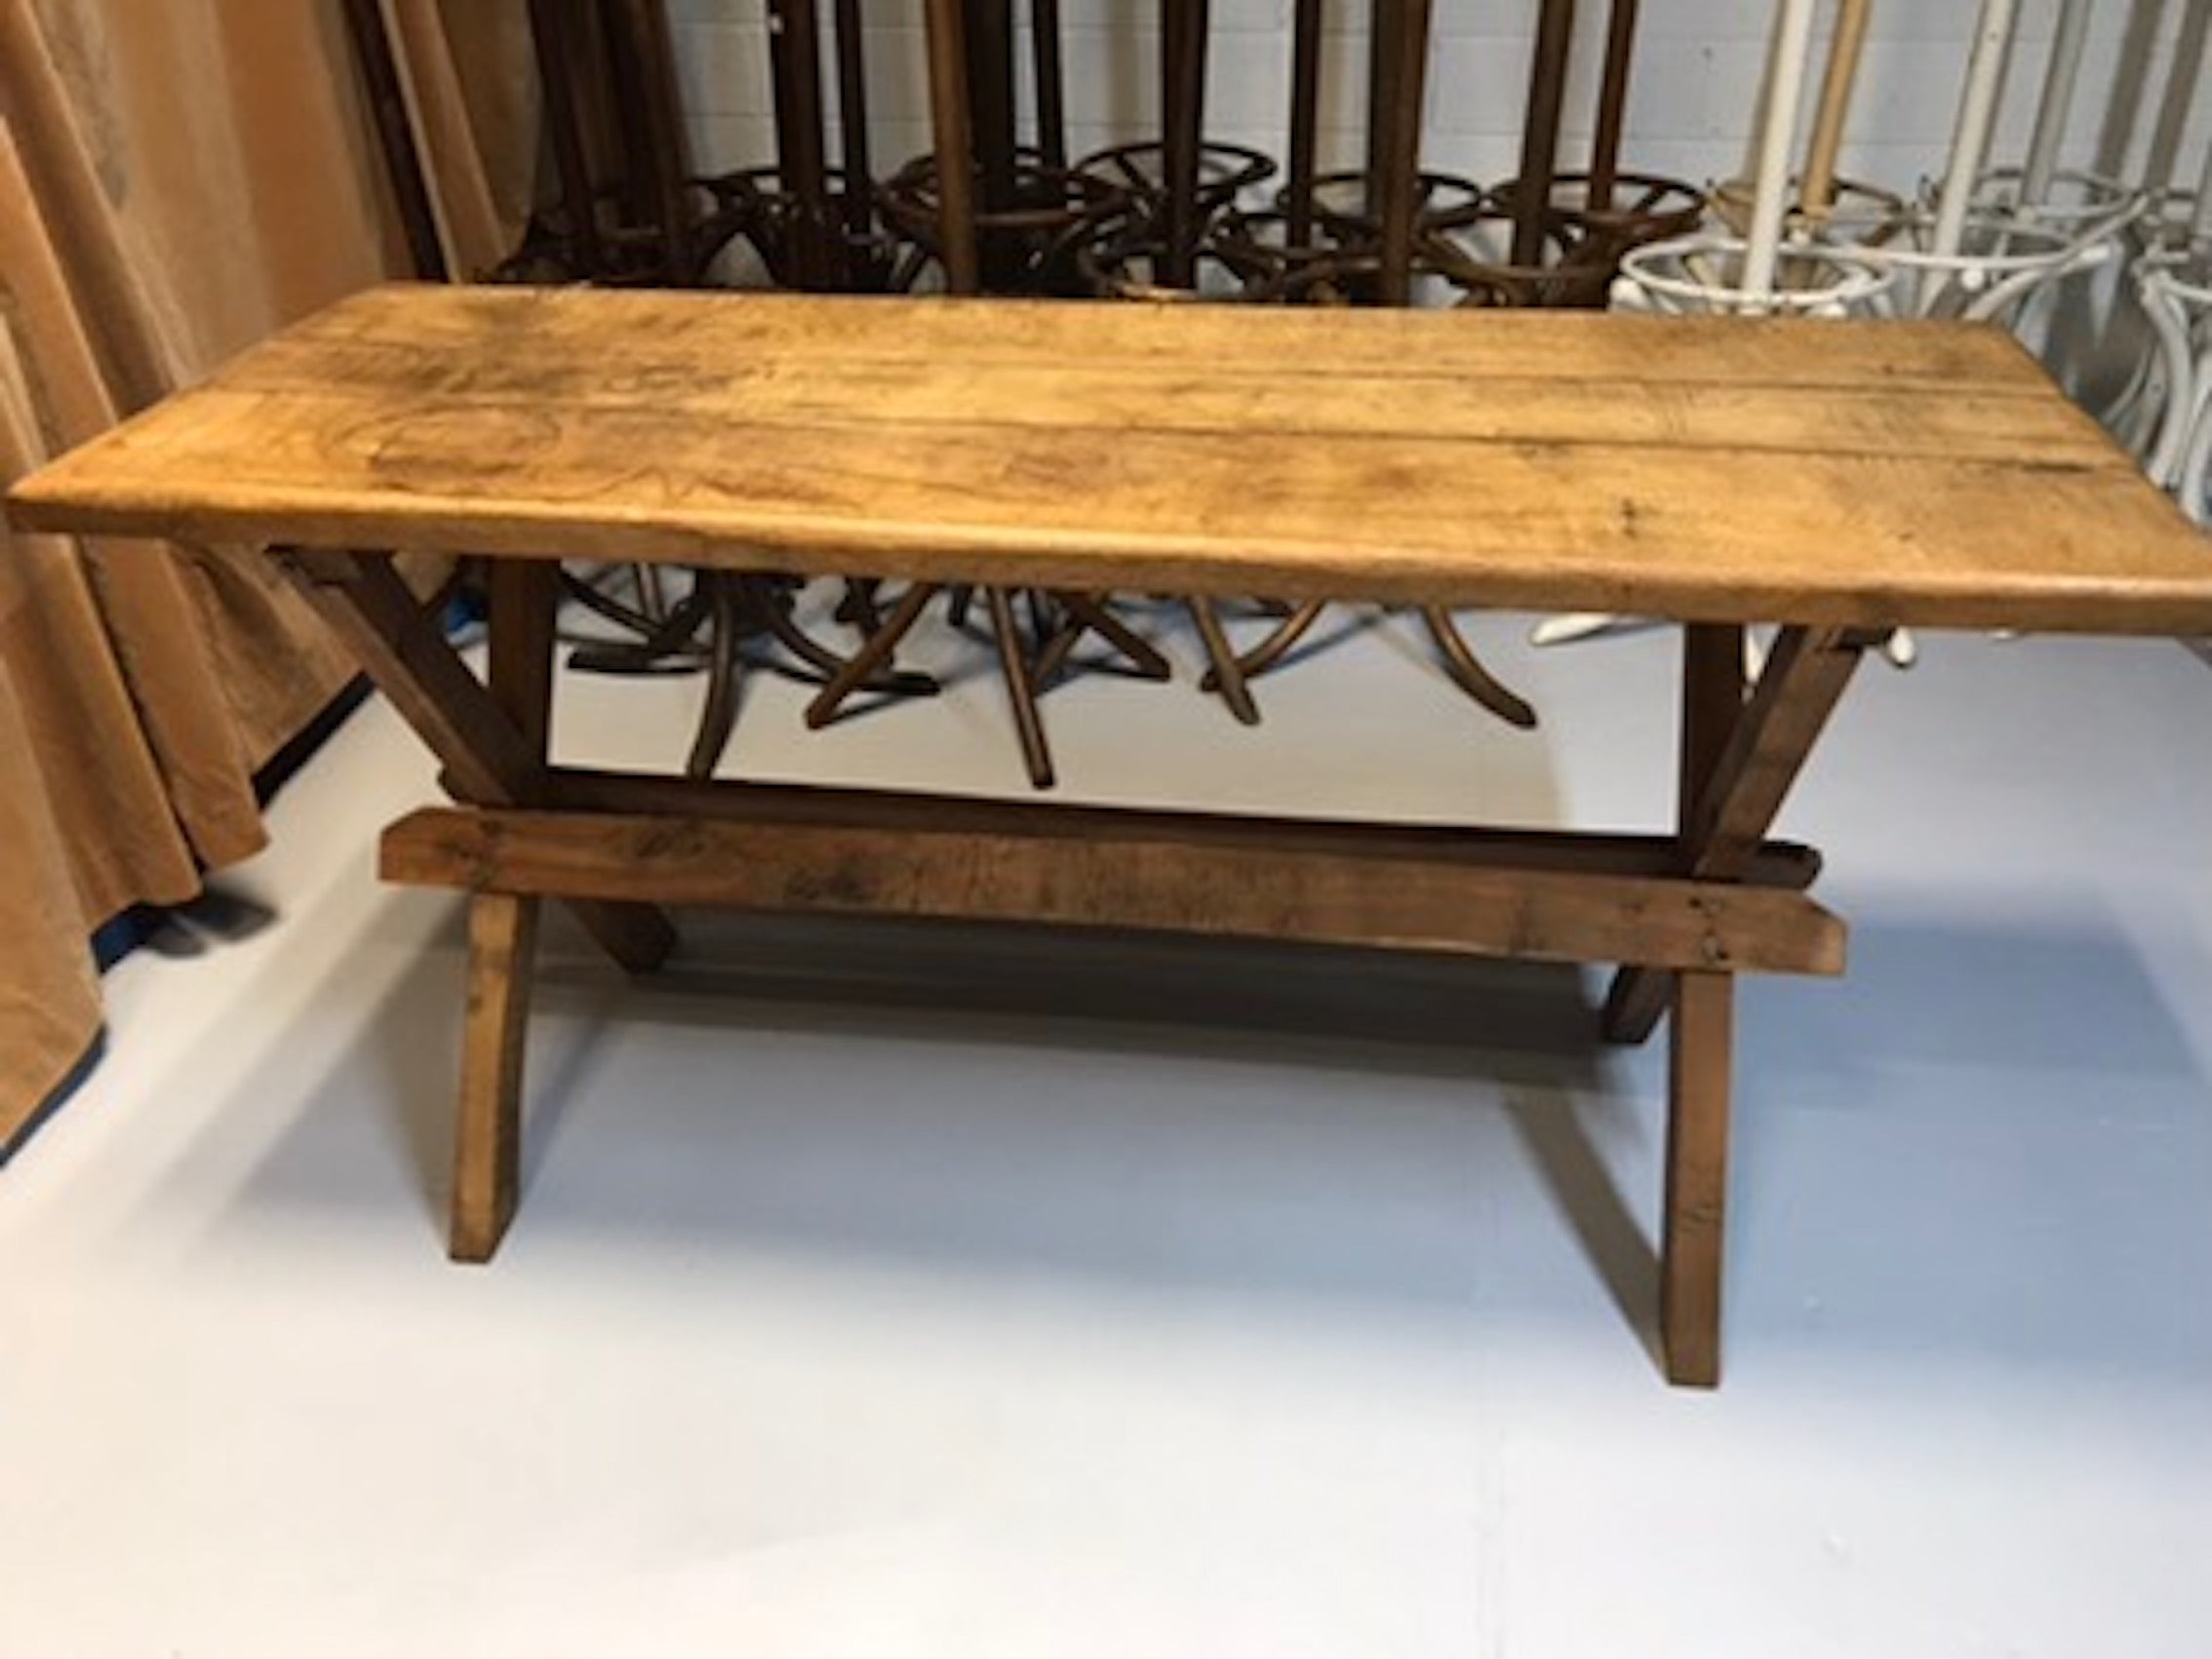 Vintage industrial European wooden hallway table console #1966